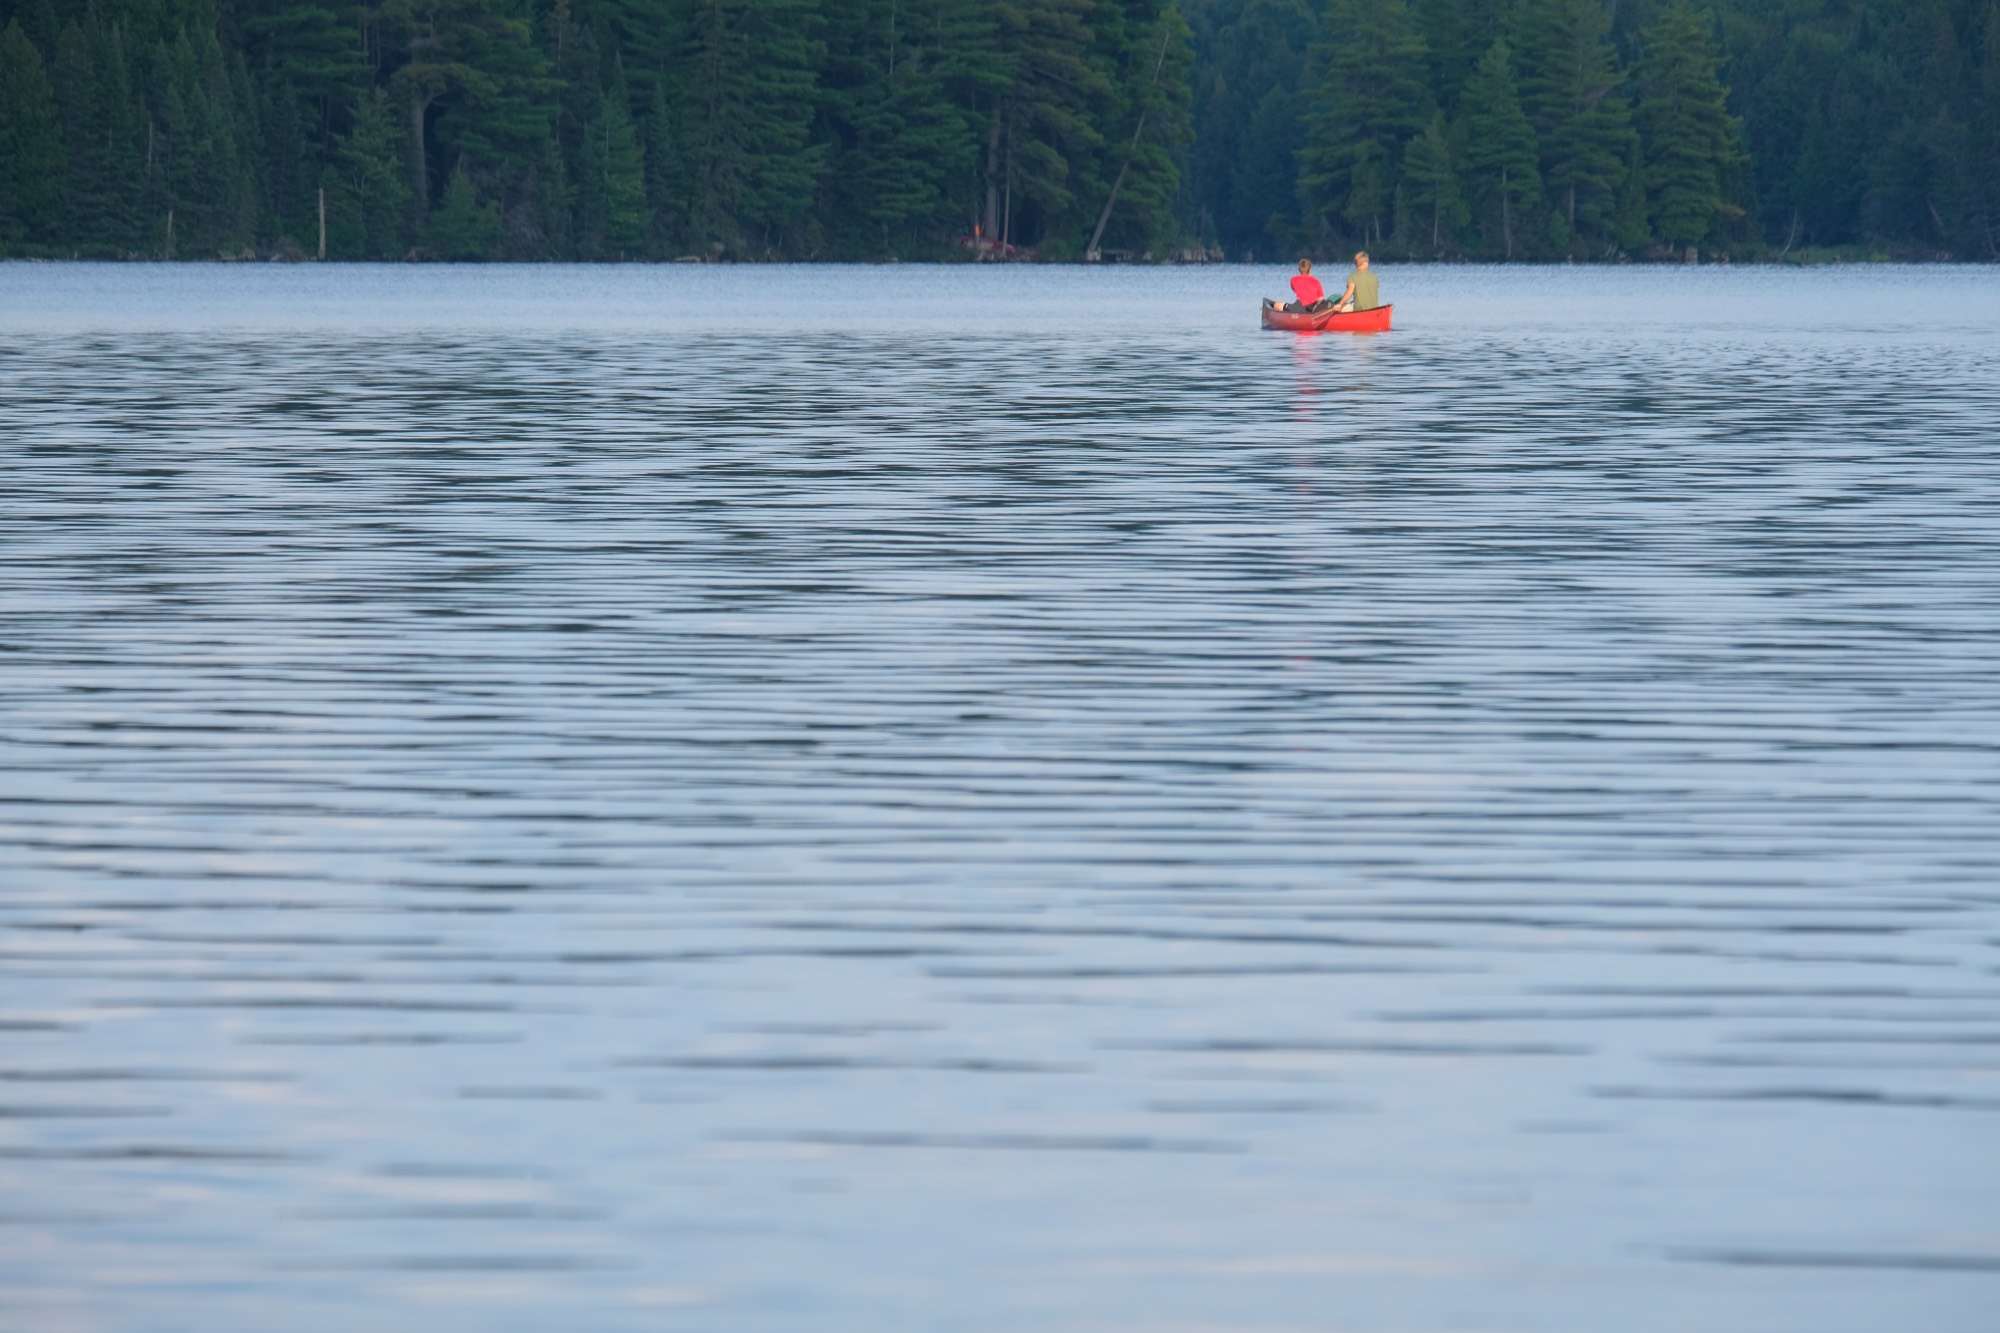 A couple of late arrivals to the Burnt Island Lake. You have to book your camp spot on the lake, but which one you get is decided on a first come first serve basis. If you're late, you may have to canoe a couple of extra kilometres until you find an empty spot...